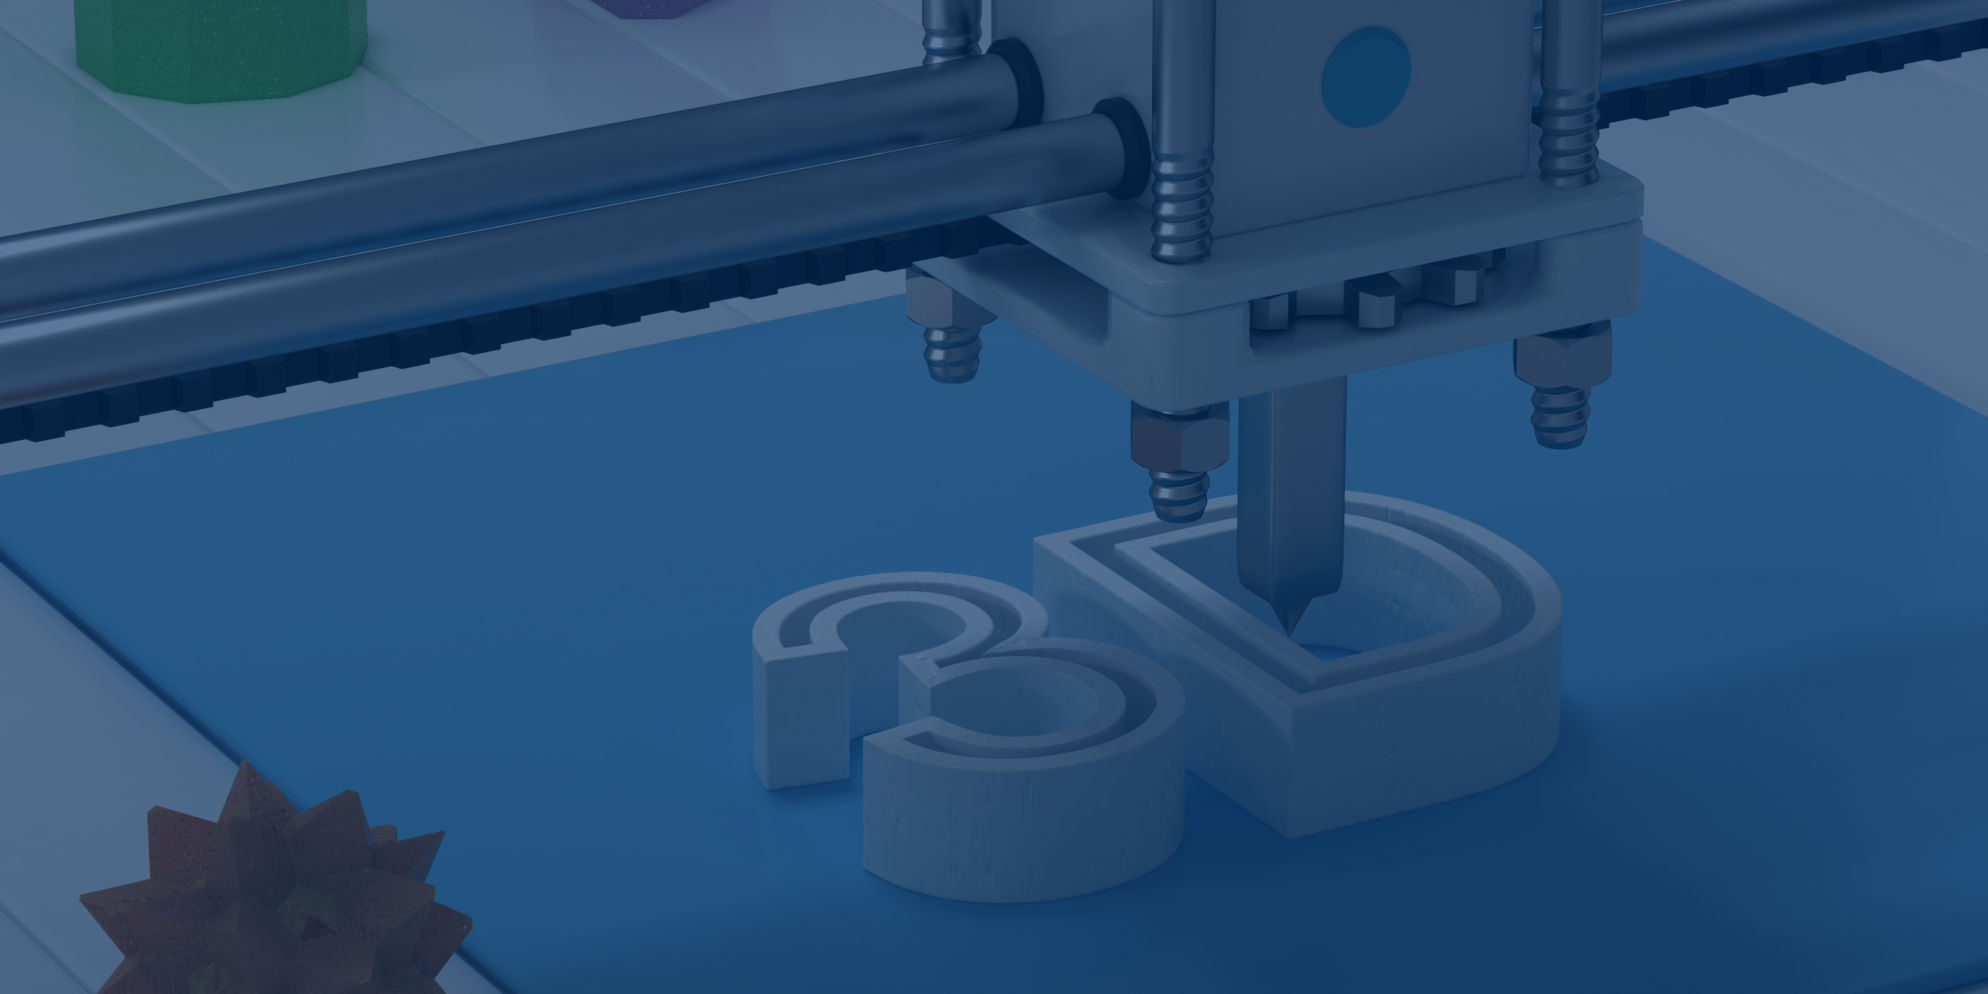 Most Common Misconceptions about Additive Manufacturing